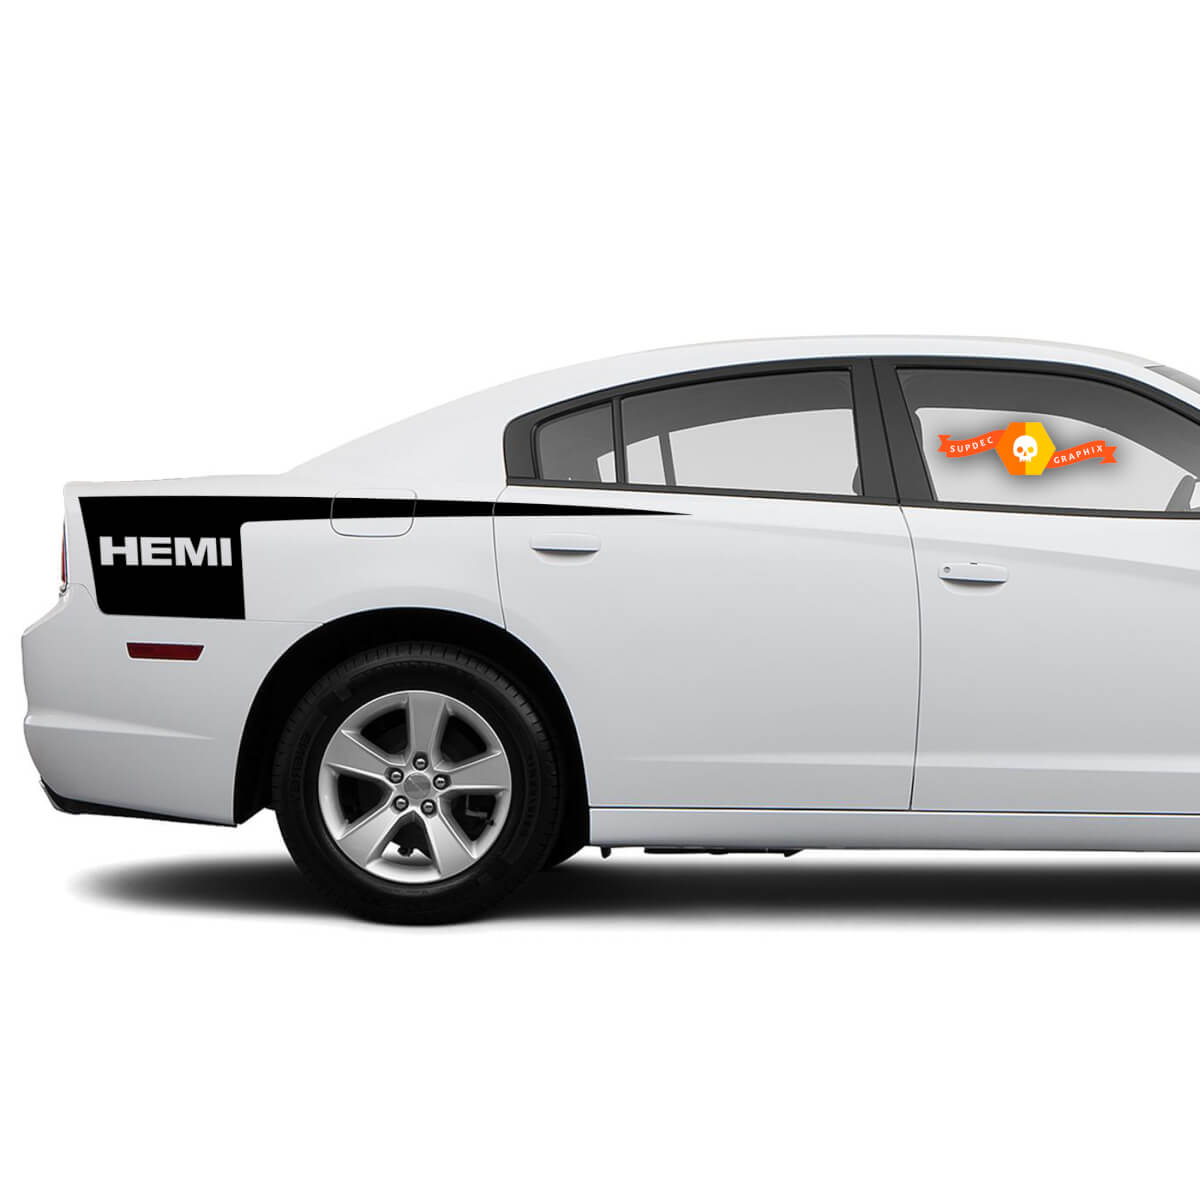 Dodge Charger HEMI side Hatchet Stripe Decal Sticker graphics fits to models 2011-2014